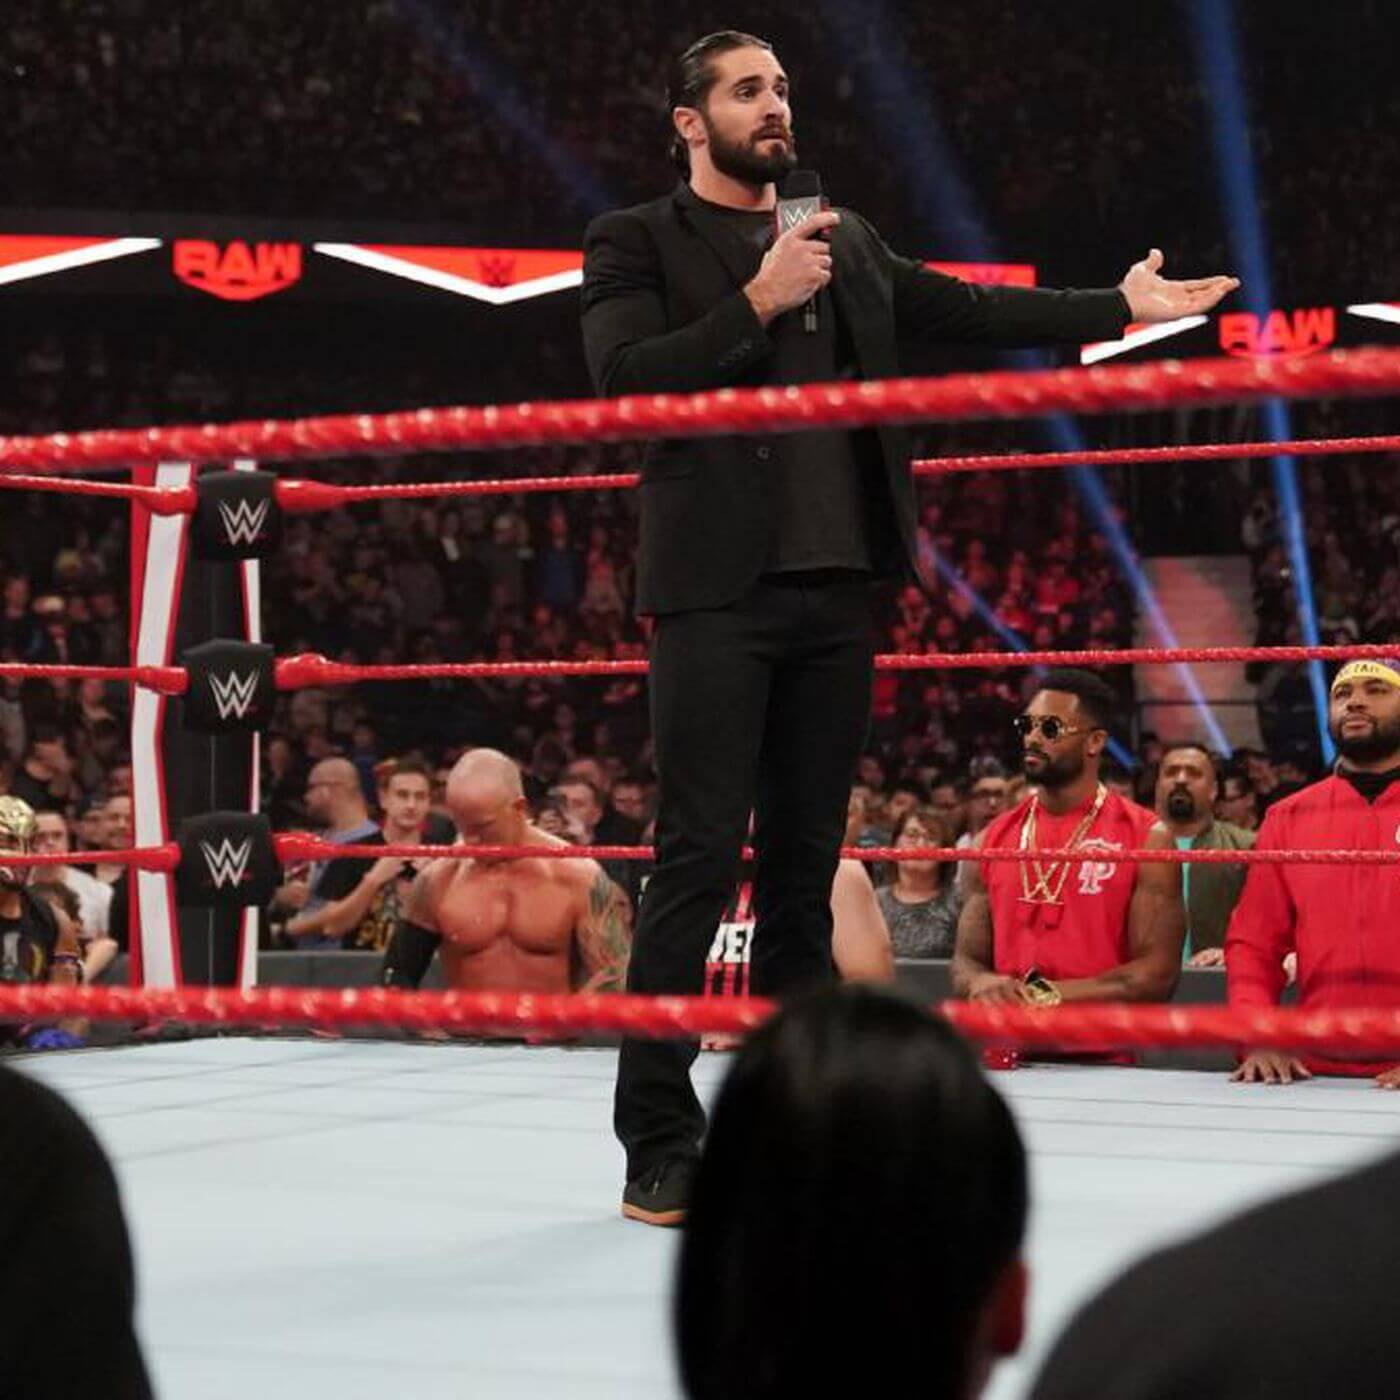 Seth Rollins was in a foul mood as he lashed out at fellow superstars